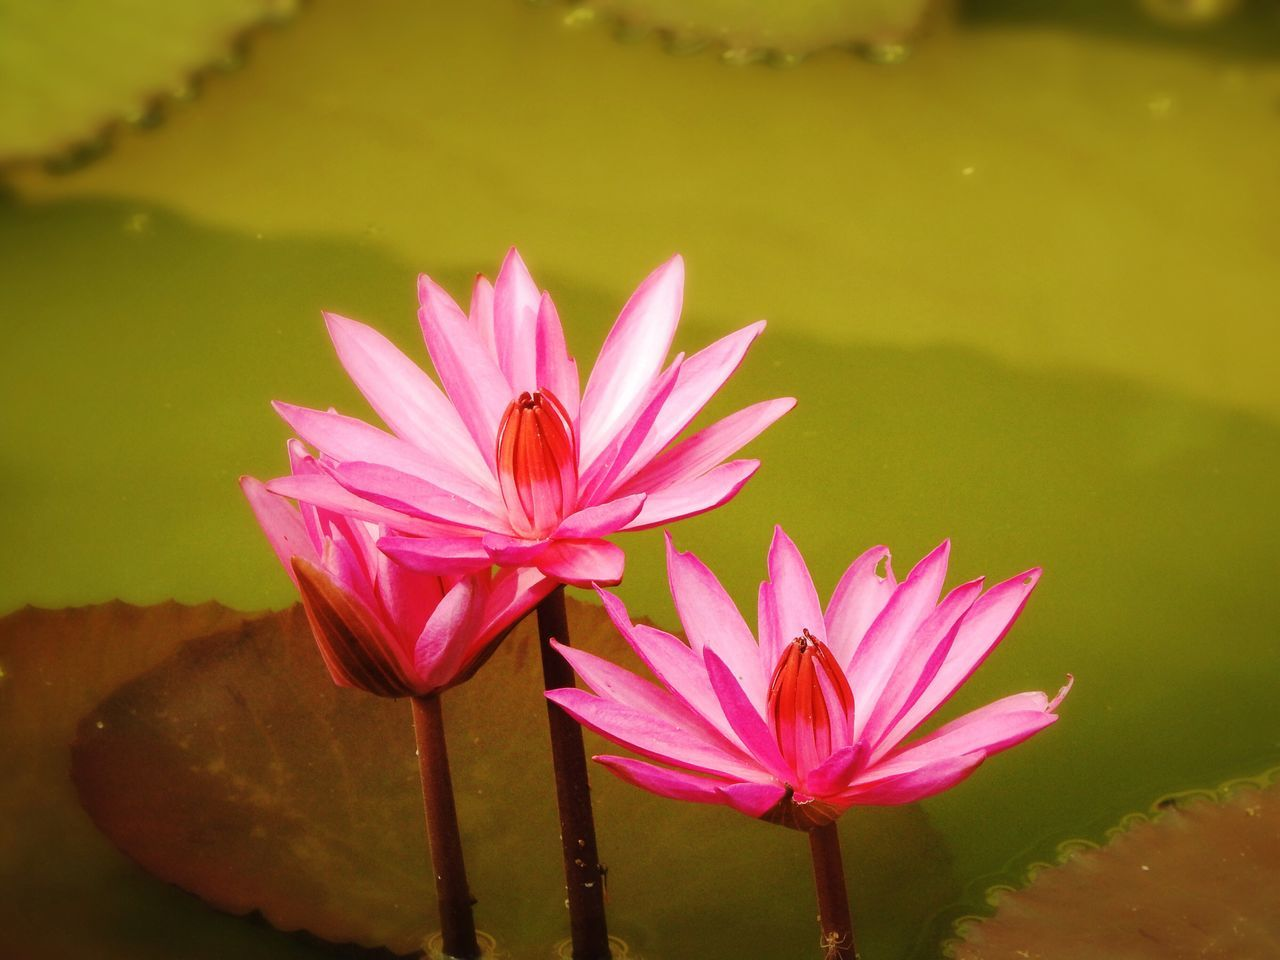 flower, beauty in nature, petal, nature, pond, lotus water lily, water lily, freshness, fragility, flower head, growth, lotus, water, no people, day, pink color, plant, leaf, floating on water, outdoors, close-up, blooming, lily pad